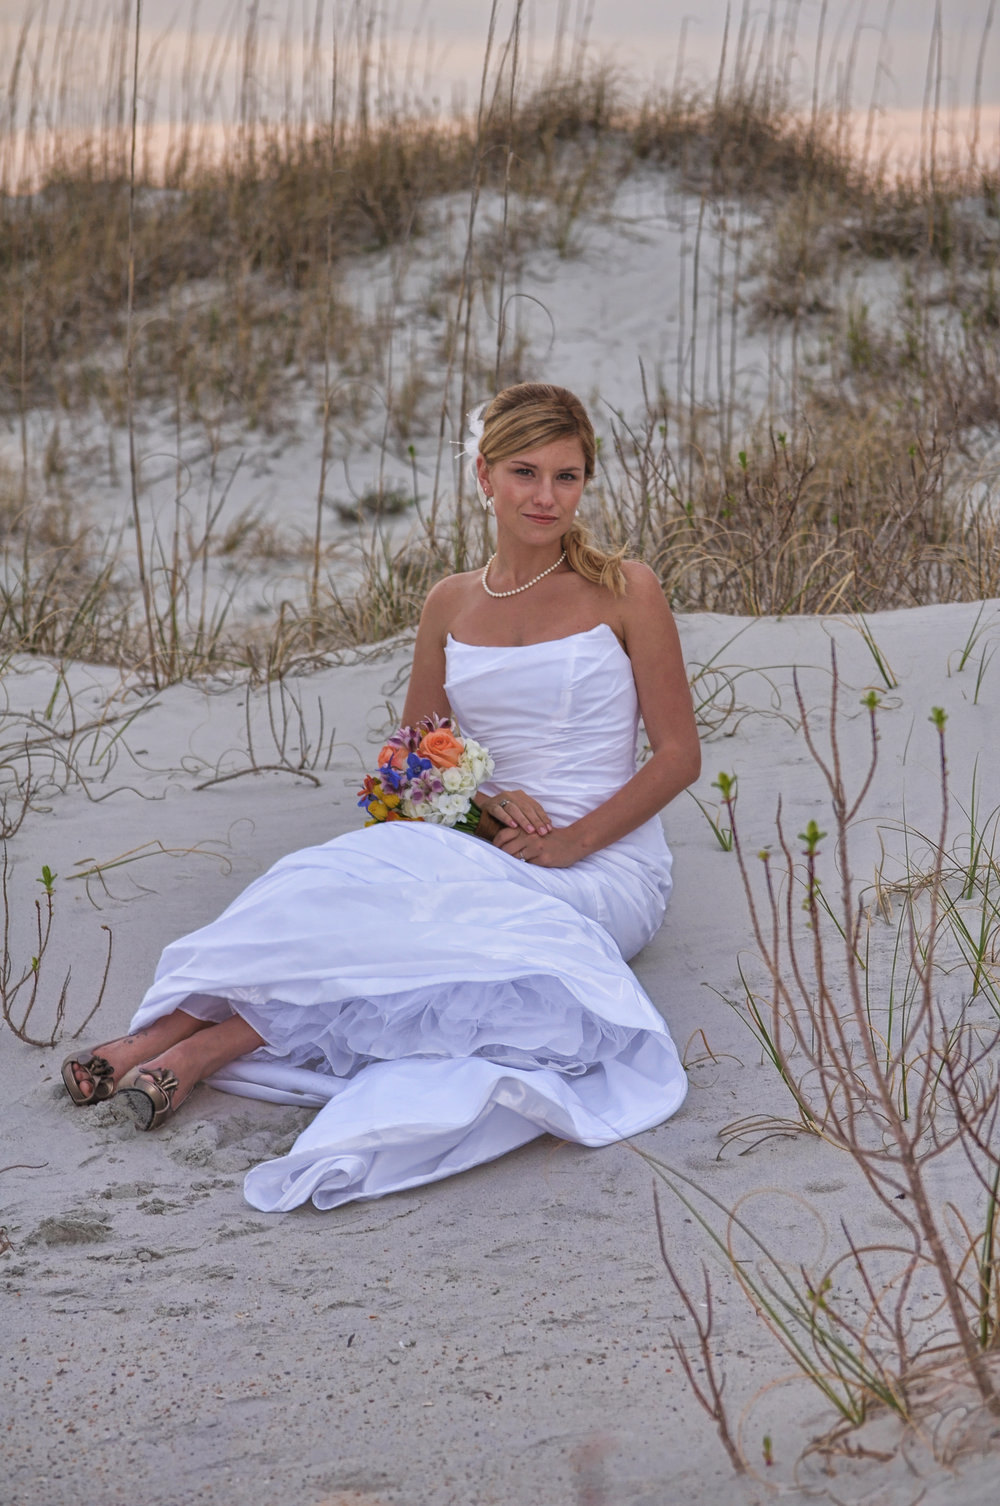 Bridal portrait at Wrightsville Beach, NC.